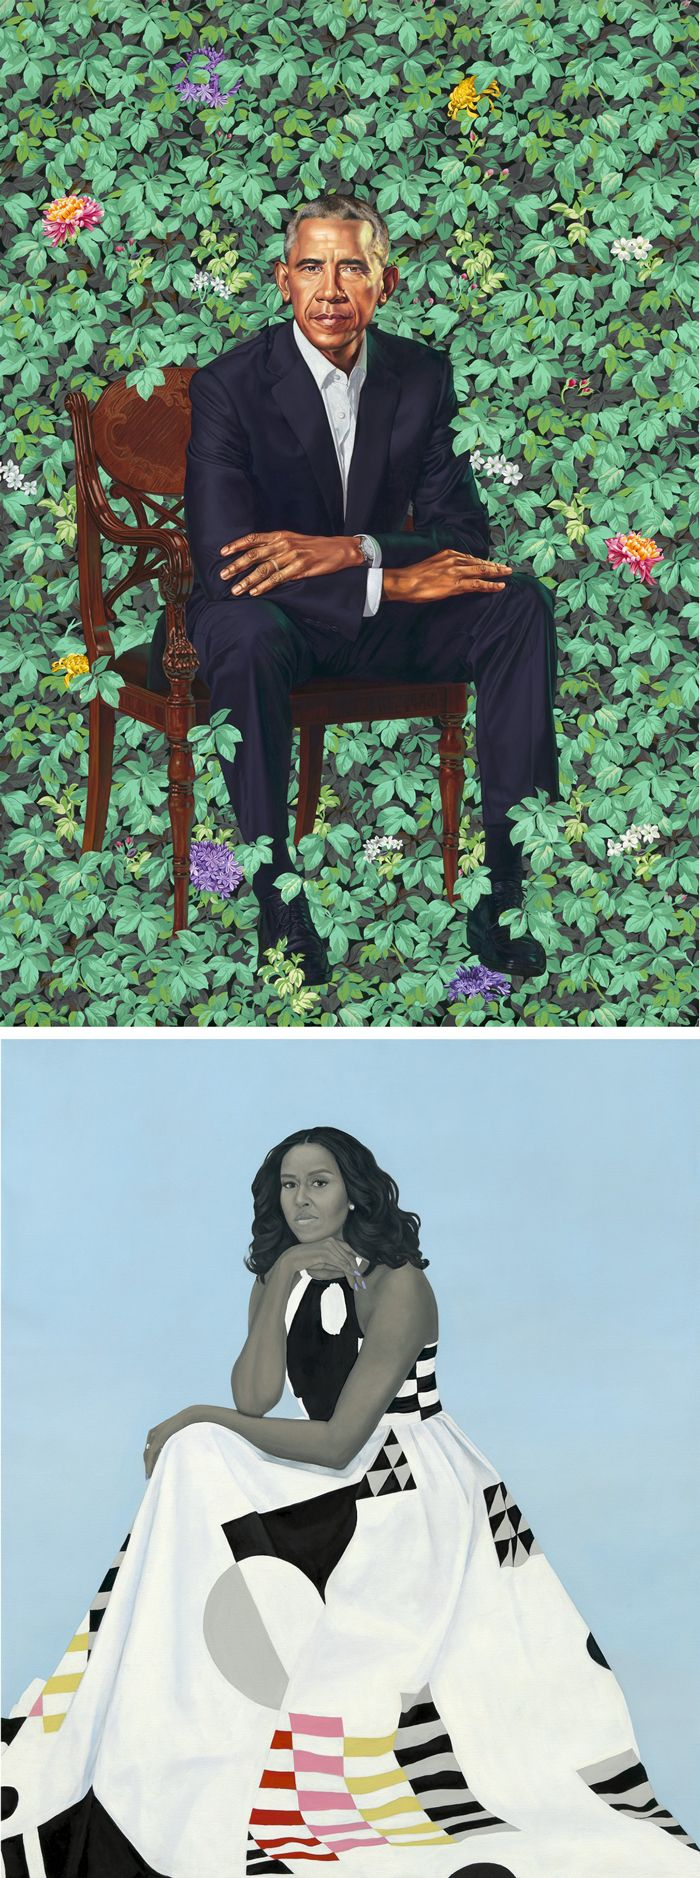 Official Portraits of President Barack Obama and First Lady Michelle Obama by Kehinde Wiley and Amy Sherald